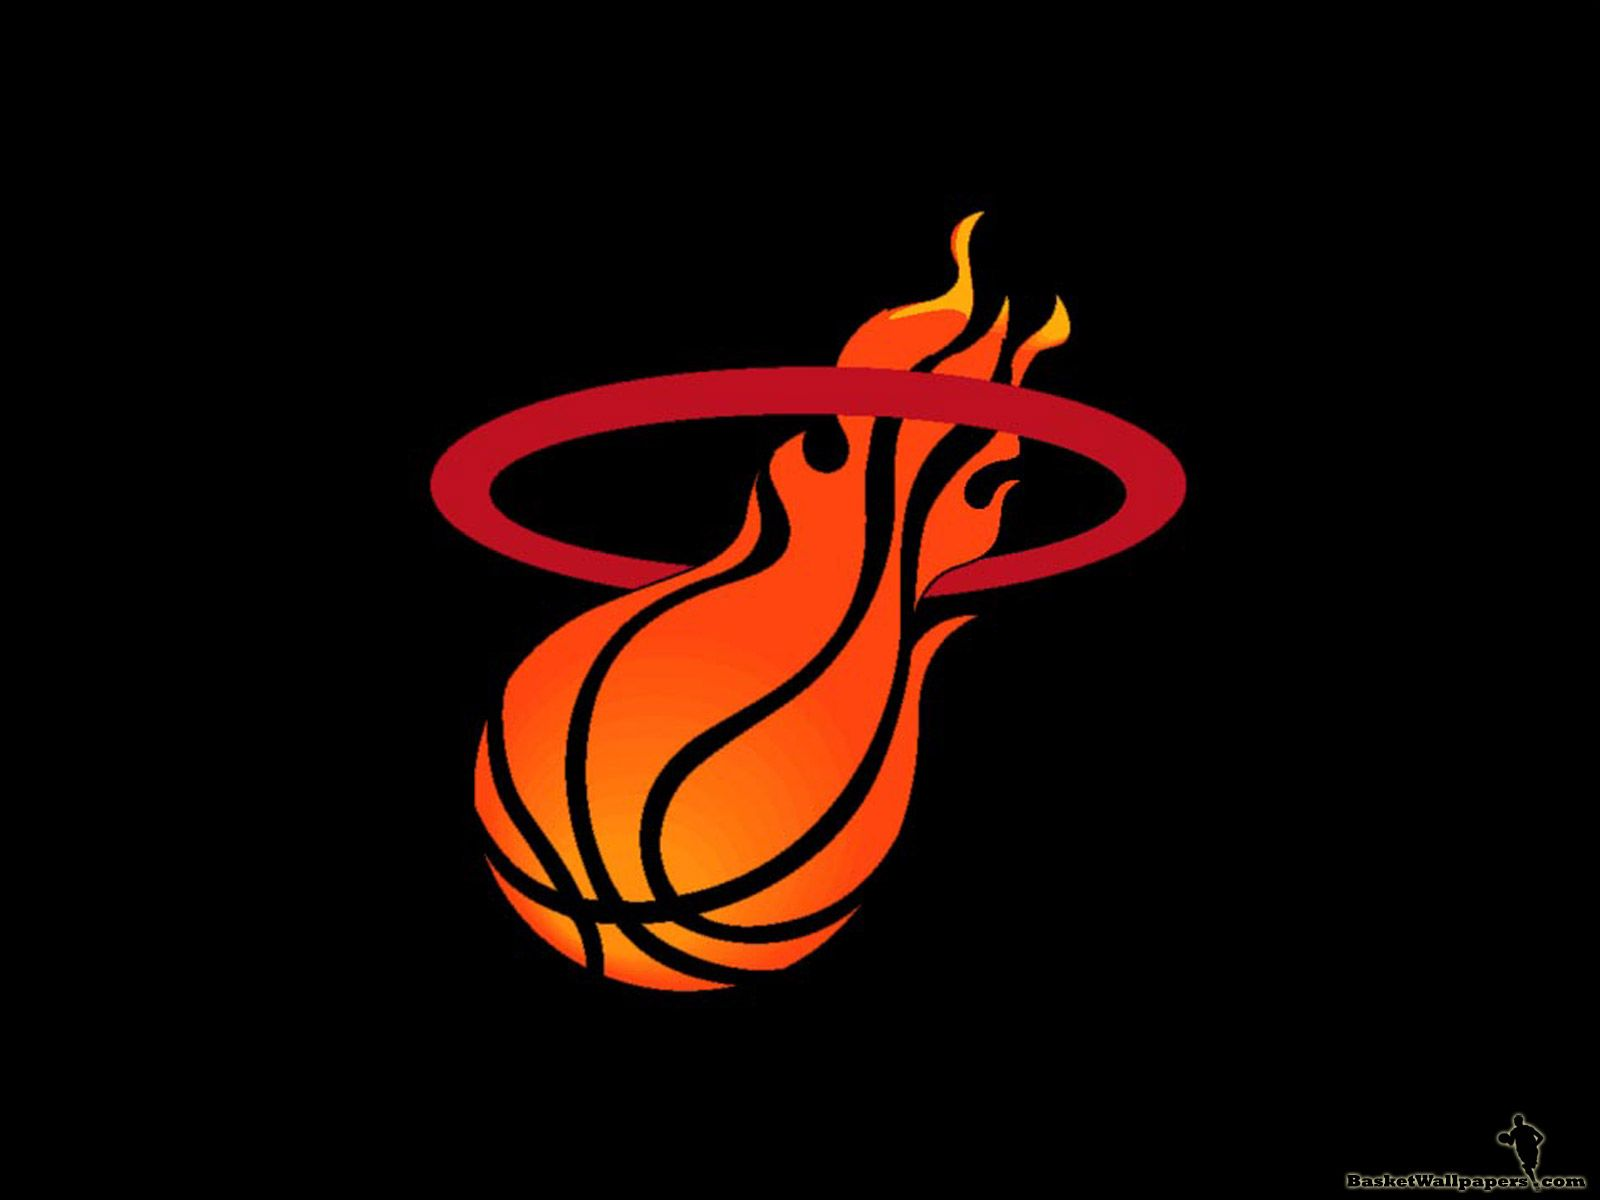 Miami Heat Logo Backgrounds Miami Heat Miami Heat Logo Basketball Wallpaper